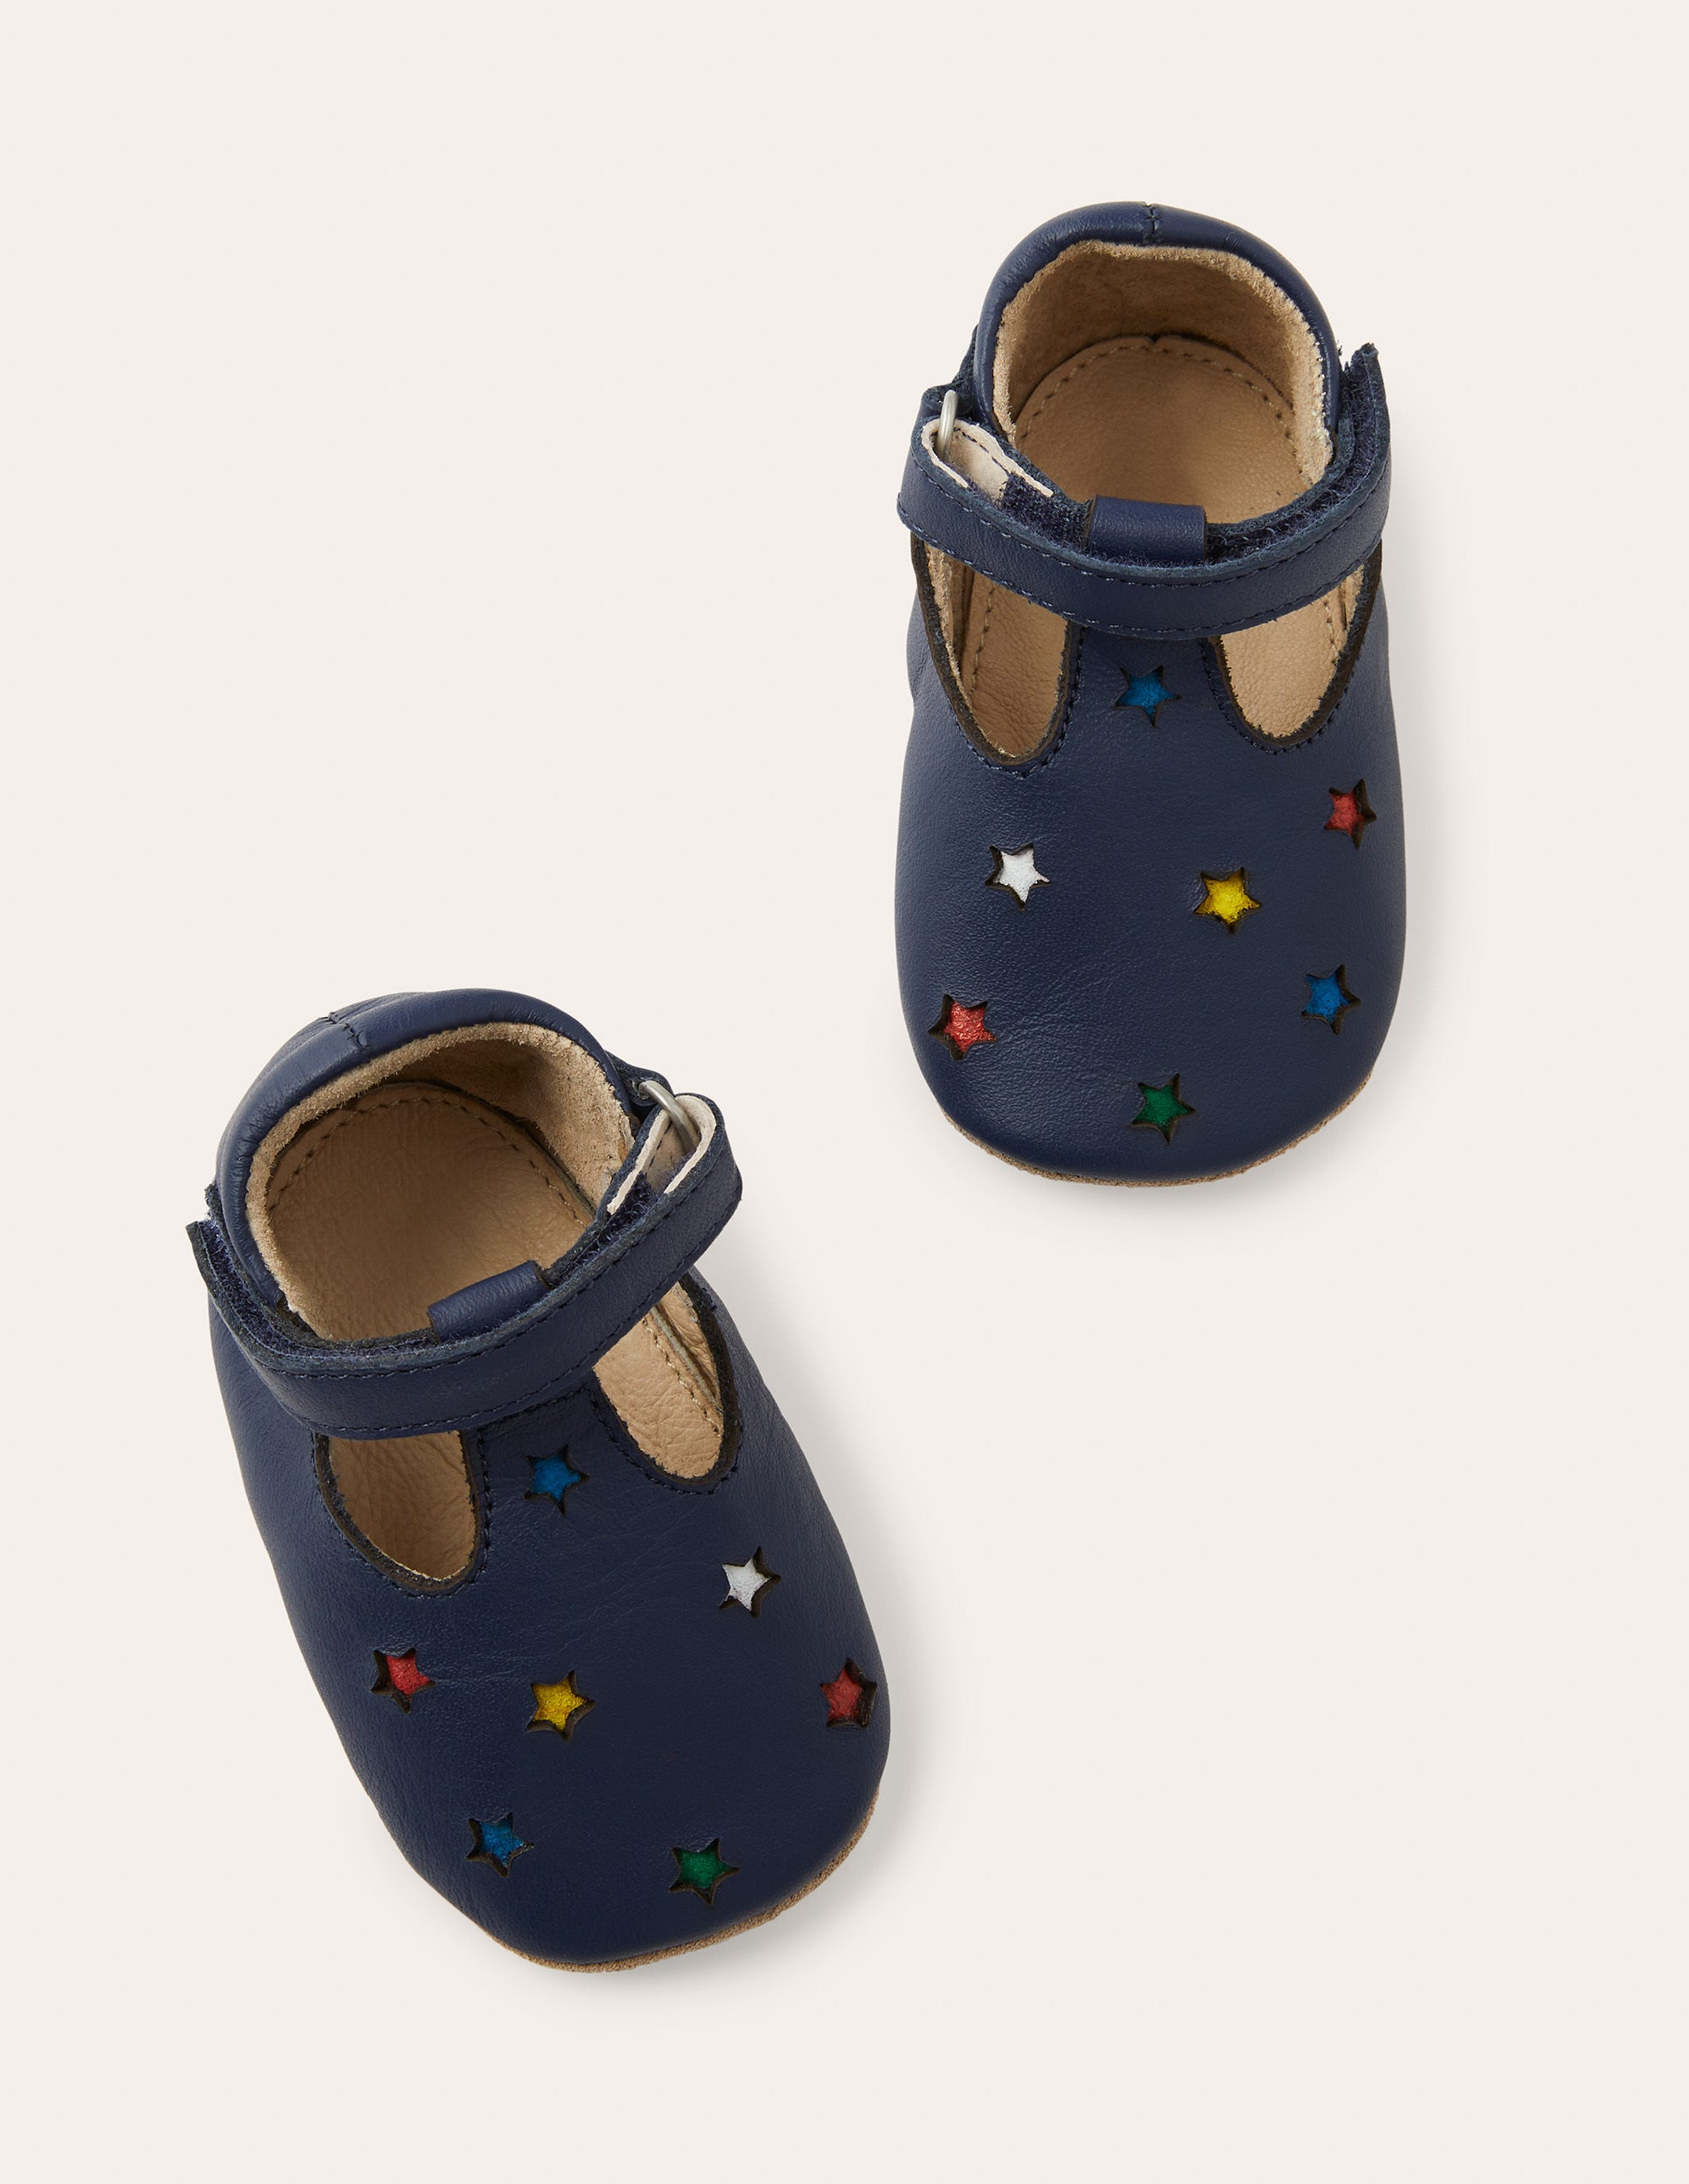 Boden Leather Baby Shoes - College Navy Stars